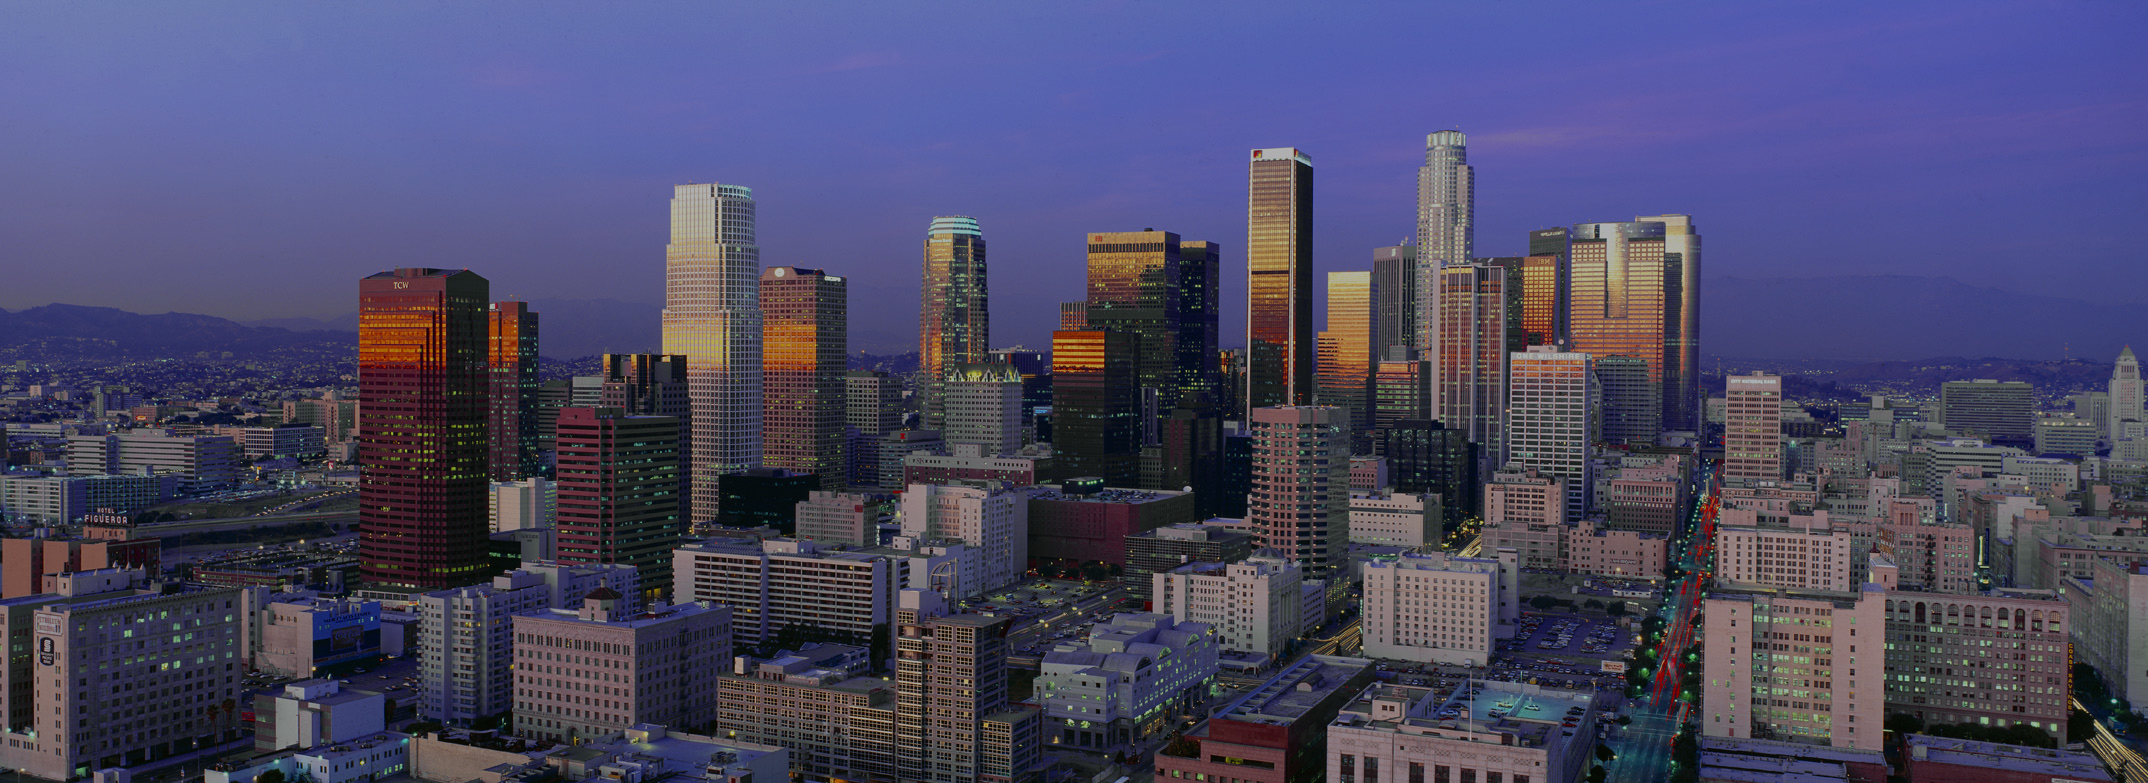 los-angeles-asset-protection-header